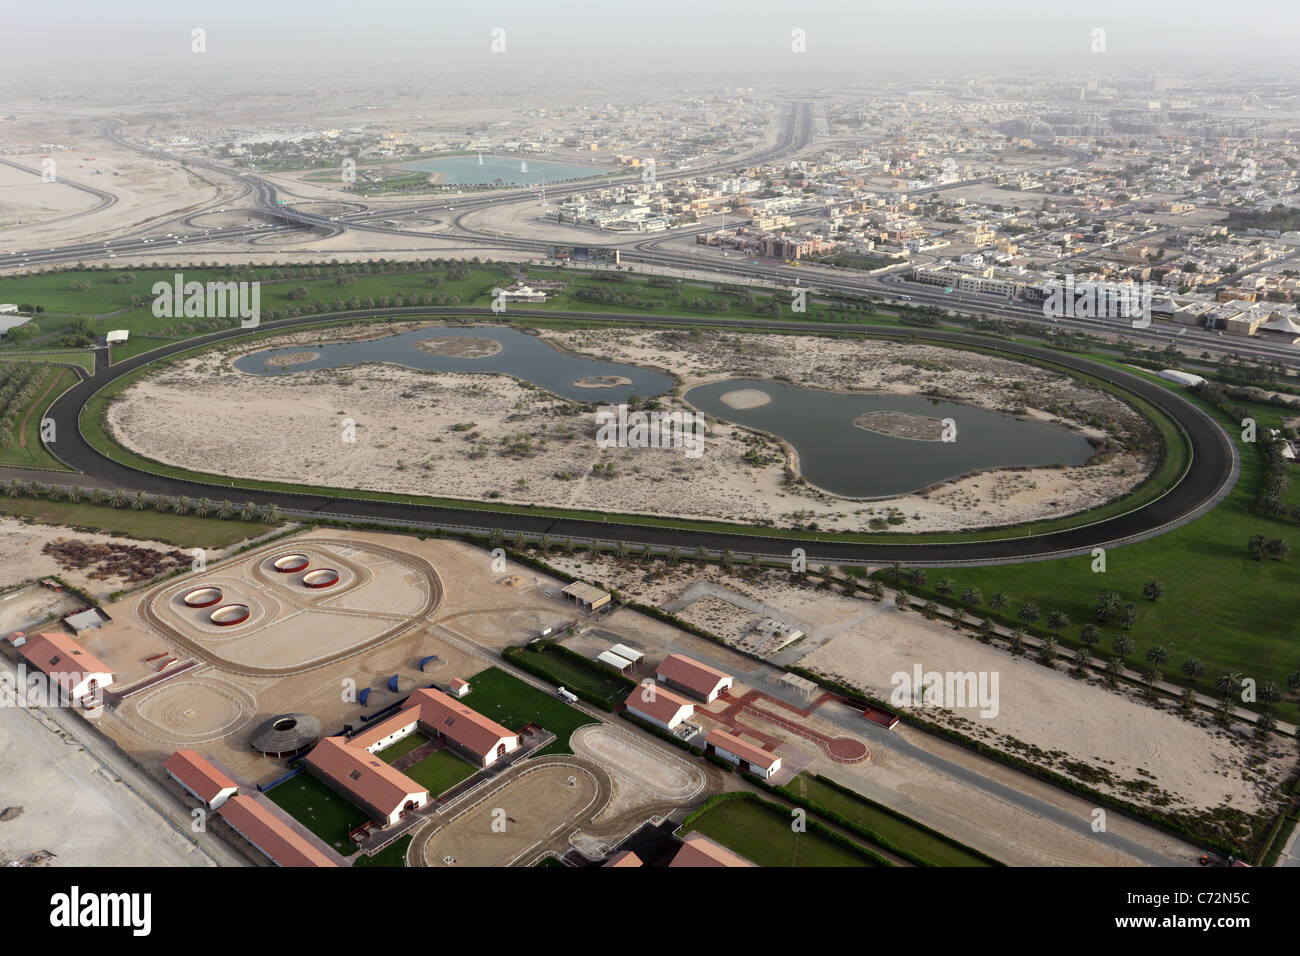 Aerial view of a Horse Race Track in Dubai - Stock Image